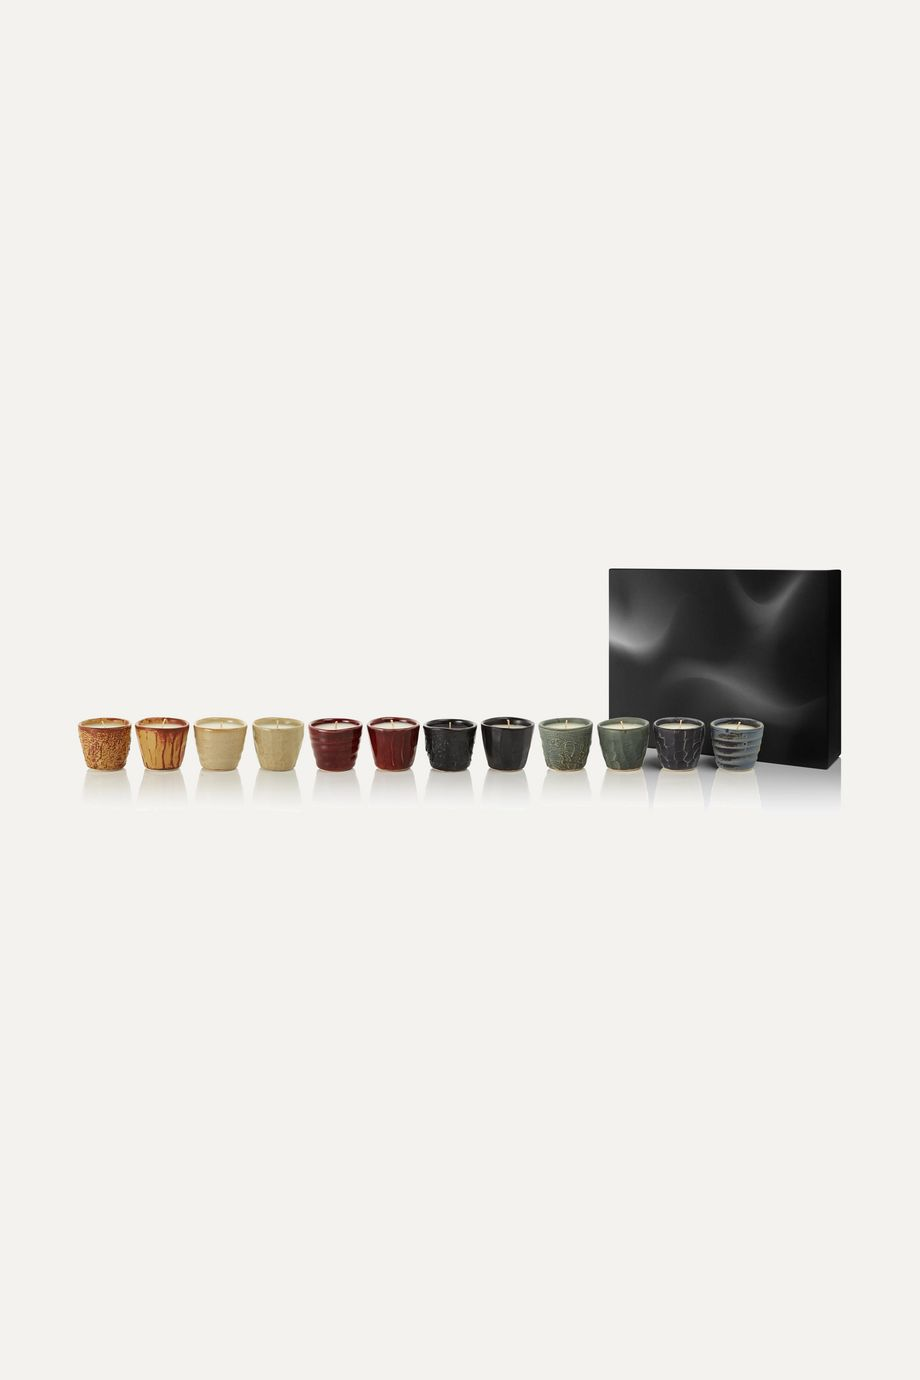 Tom Dixon The Collector set of 12 scented candles, 12 x 75g